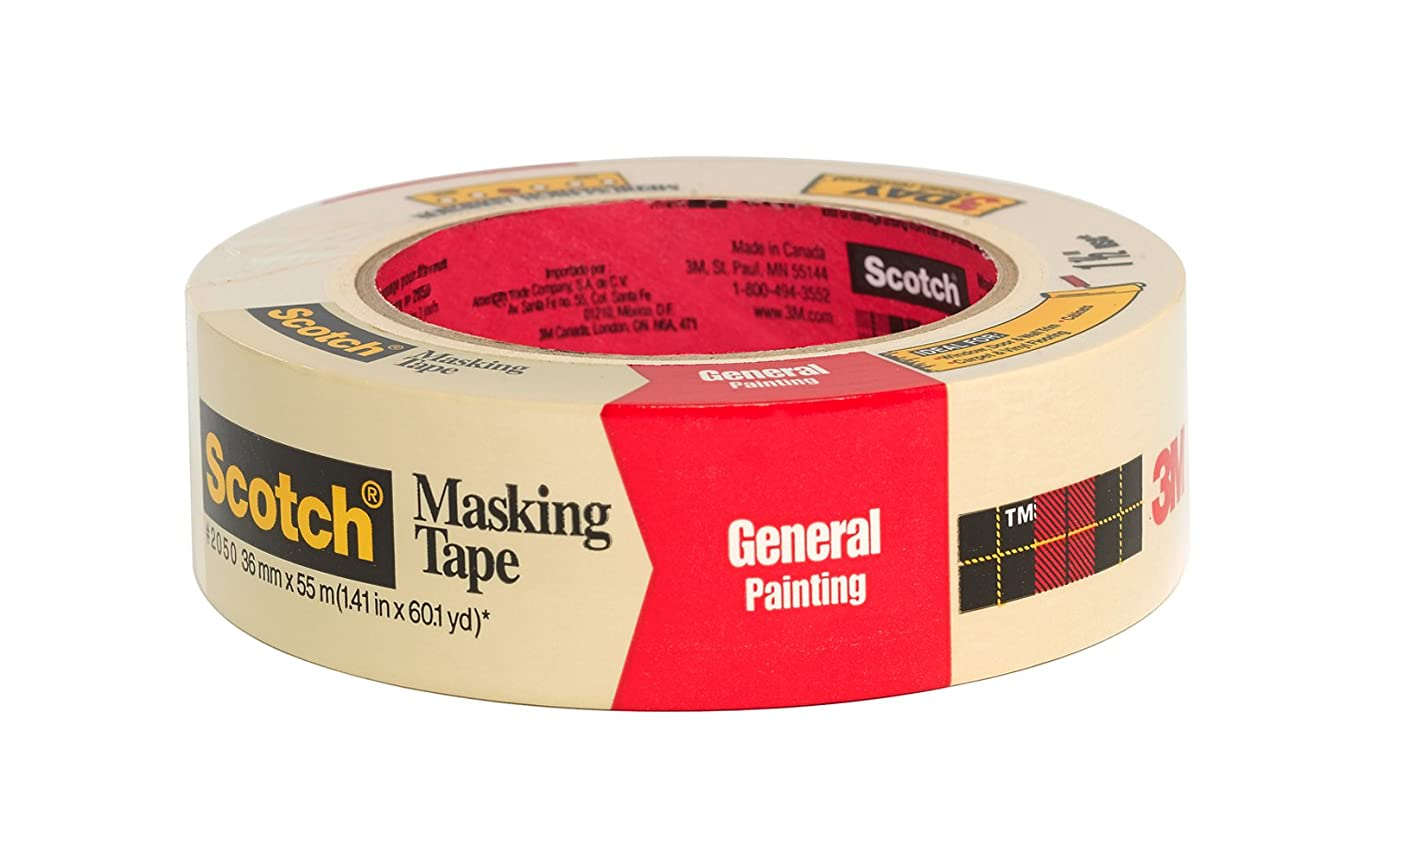 Scotch Greener Masking Tape for Performance Painting, 2050-36A-BK, 1.41-Inch by 60.1-Yards, 1 Roll